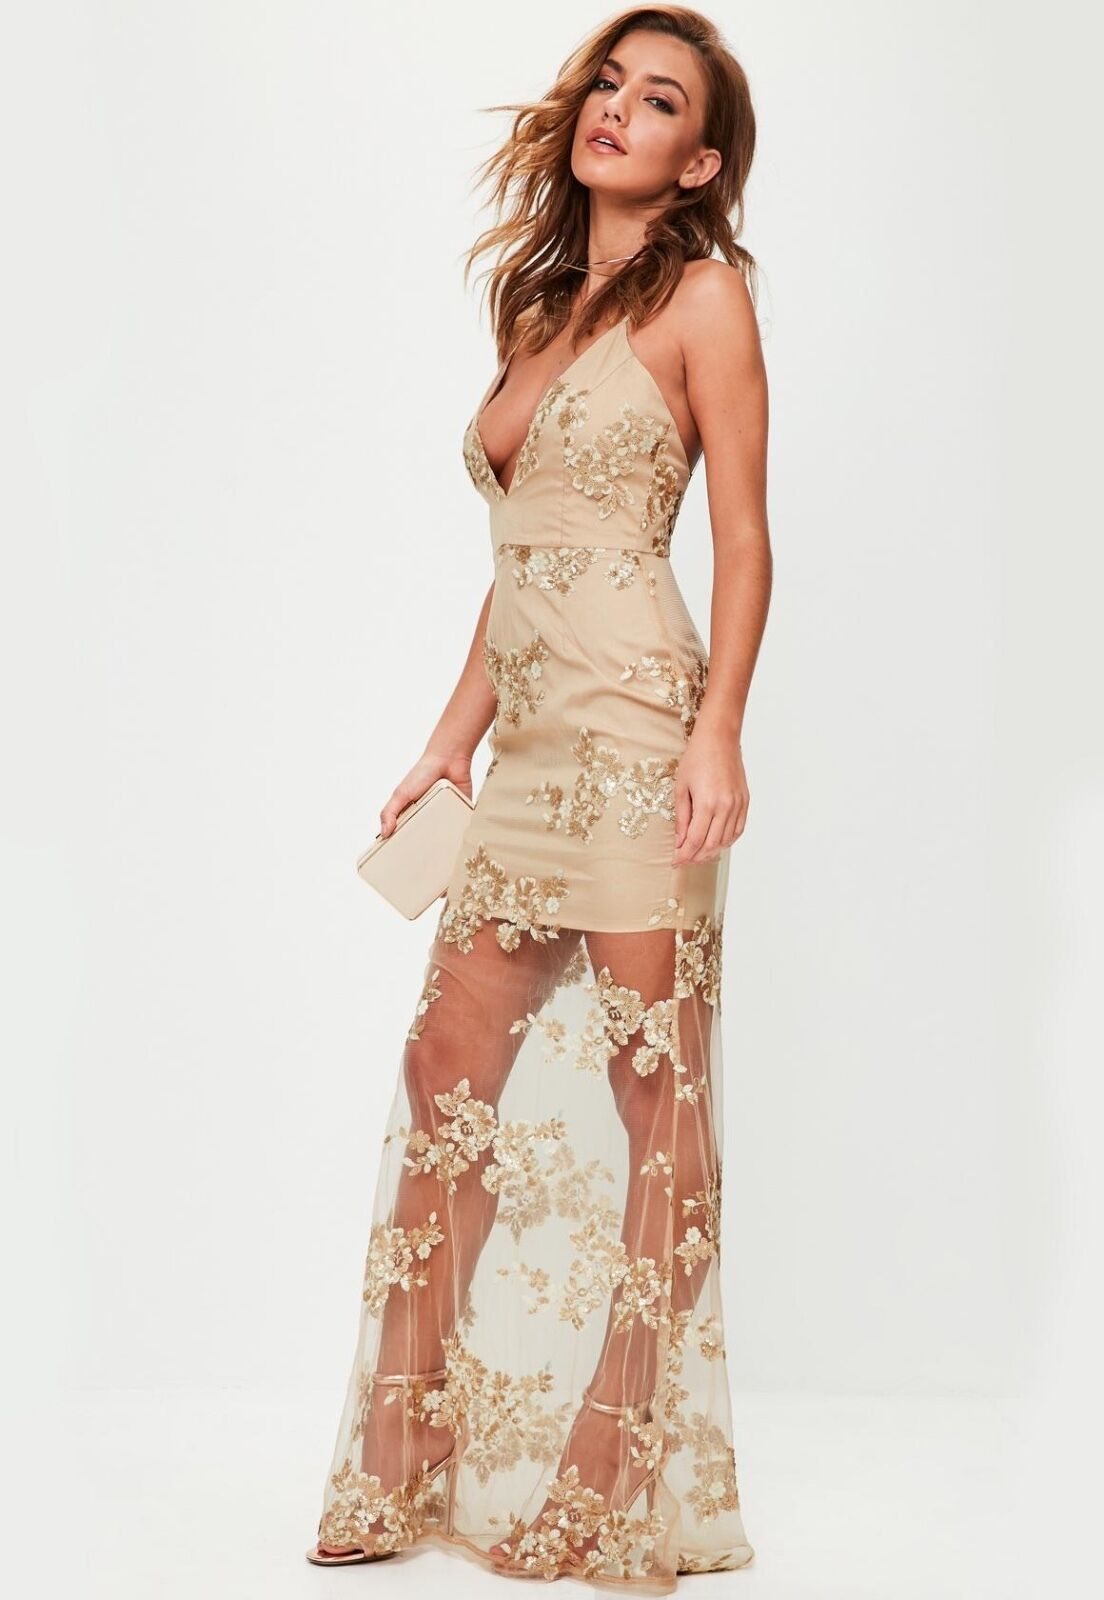 Missguided nude emb. plunge maxi dress sheer bling see thru wedding Birthday